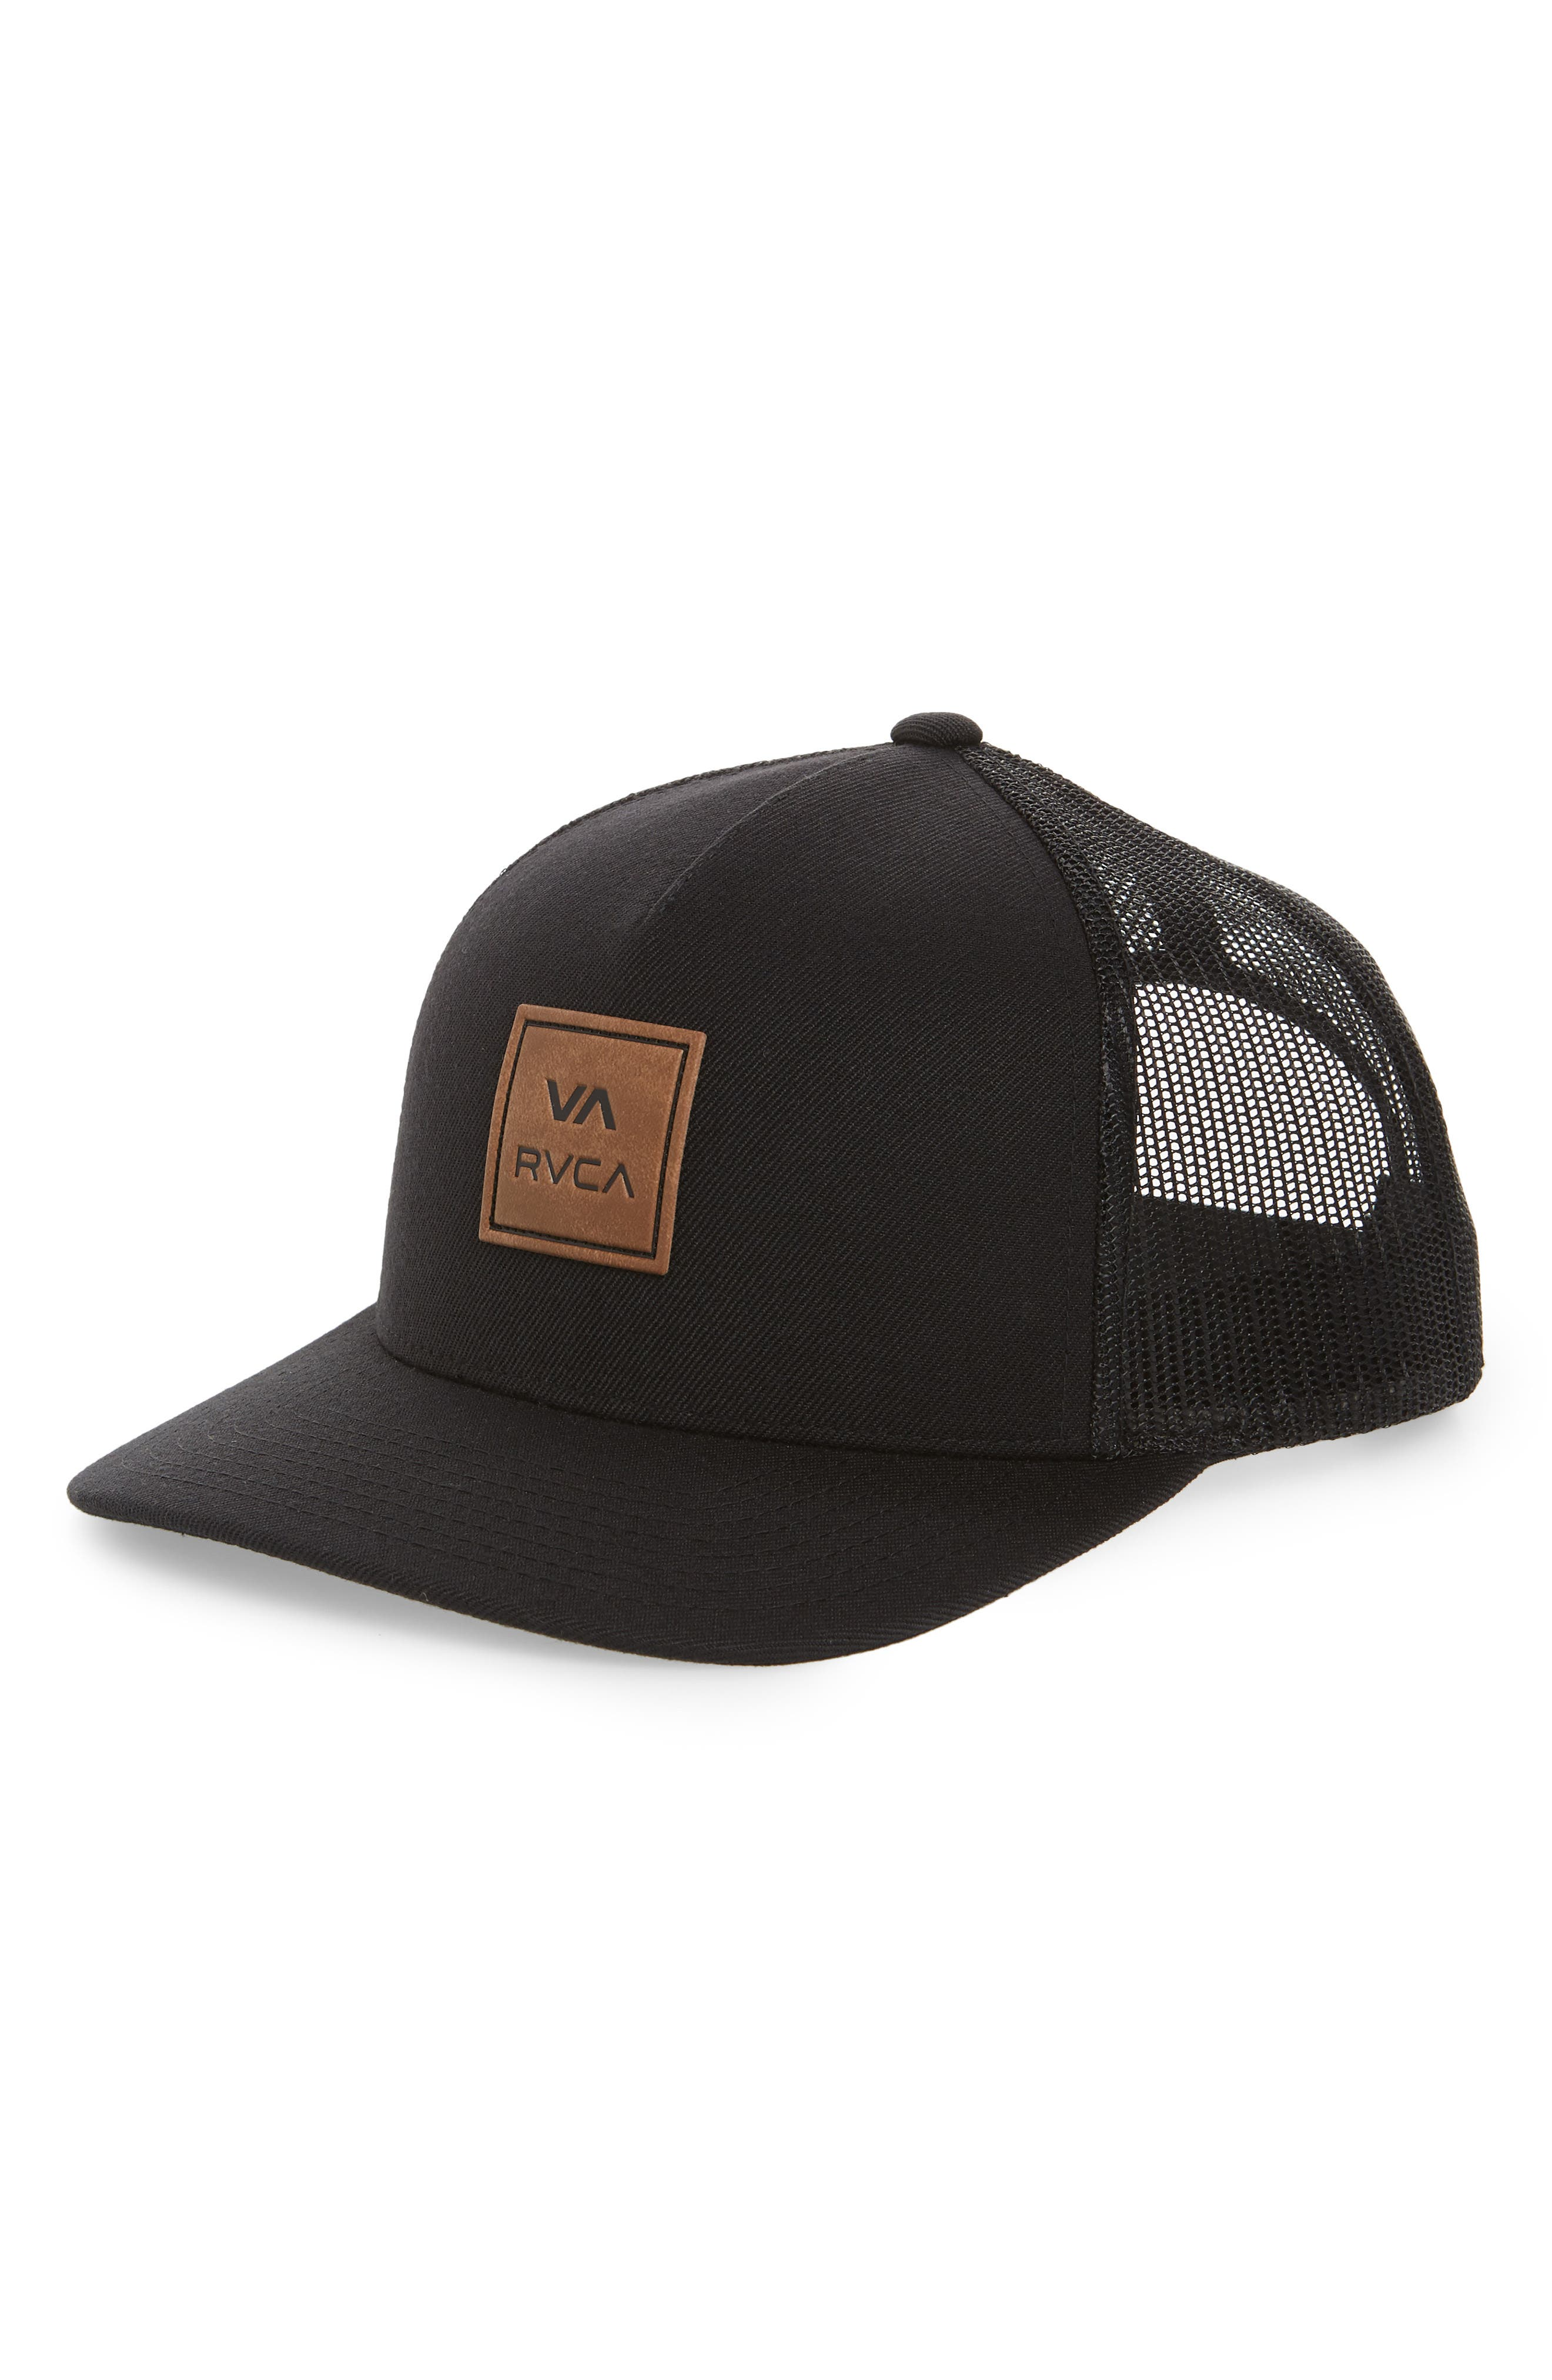 RVCA VA All the Way Logo Cap